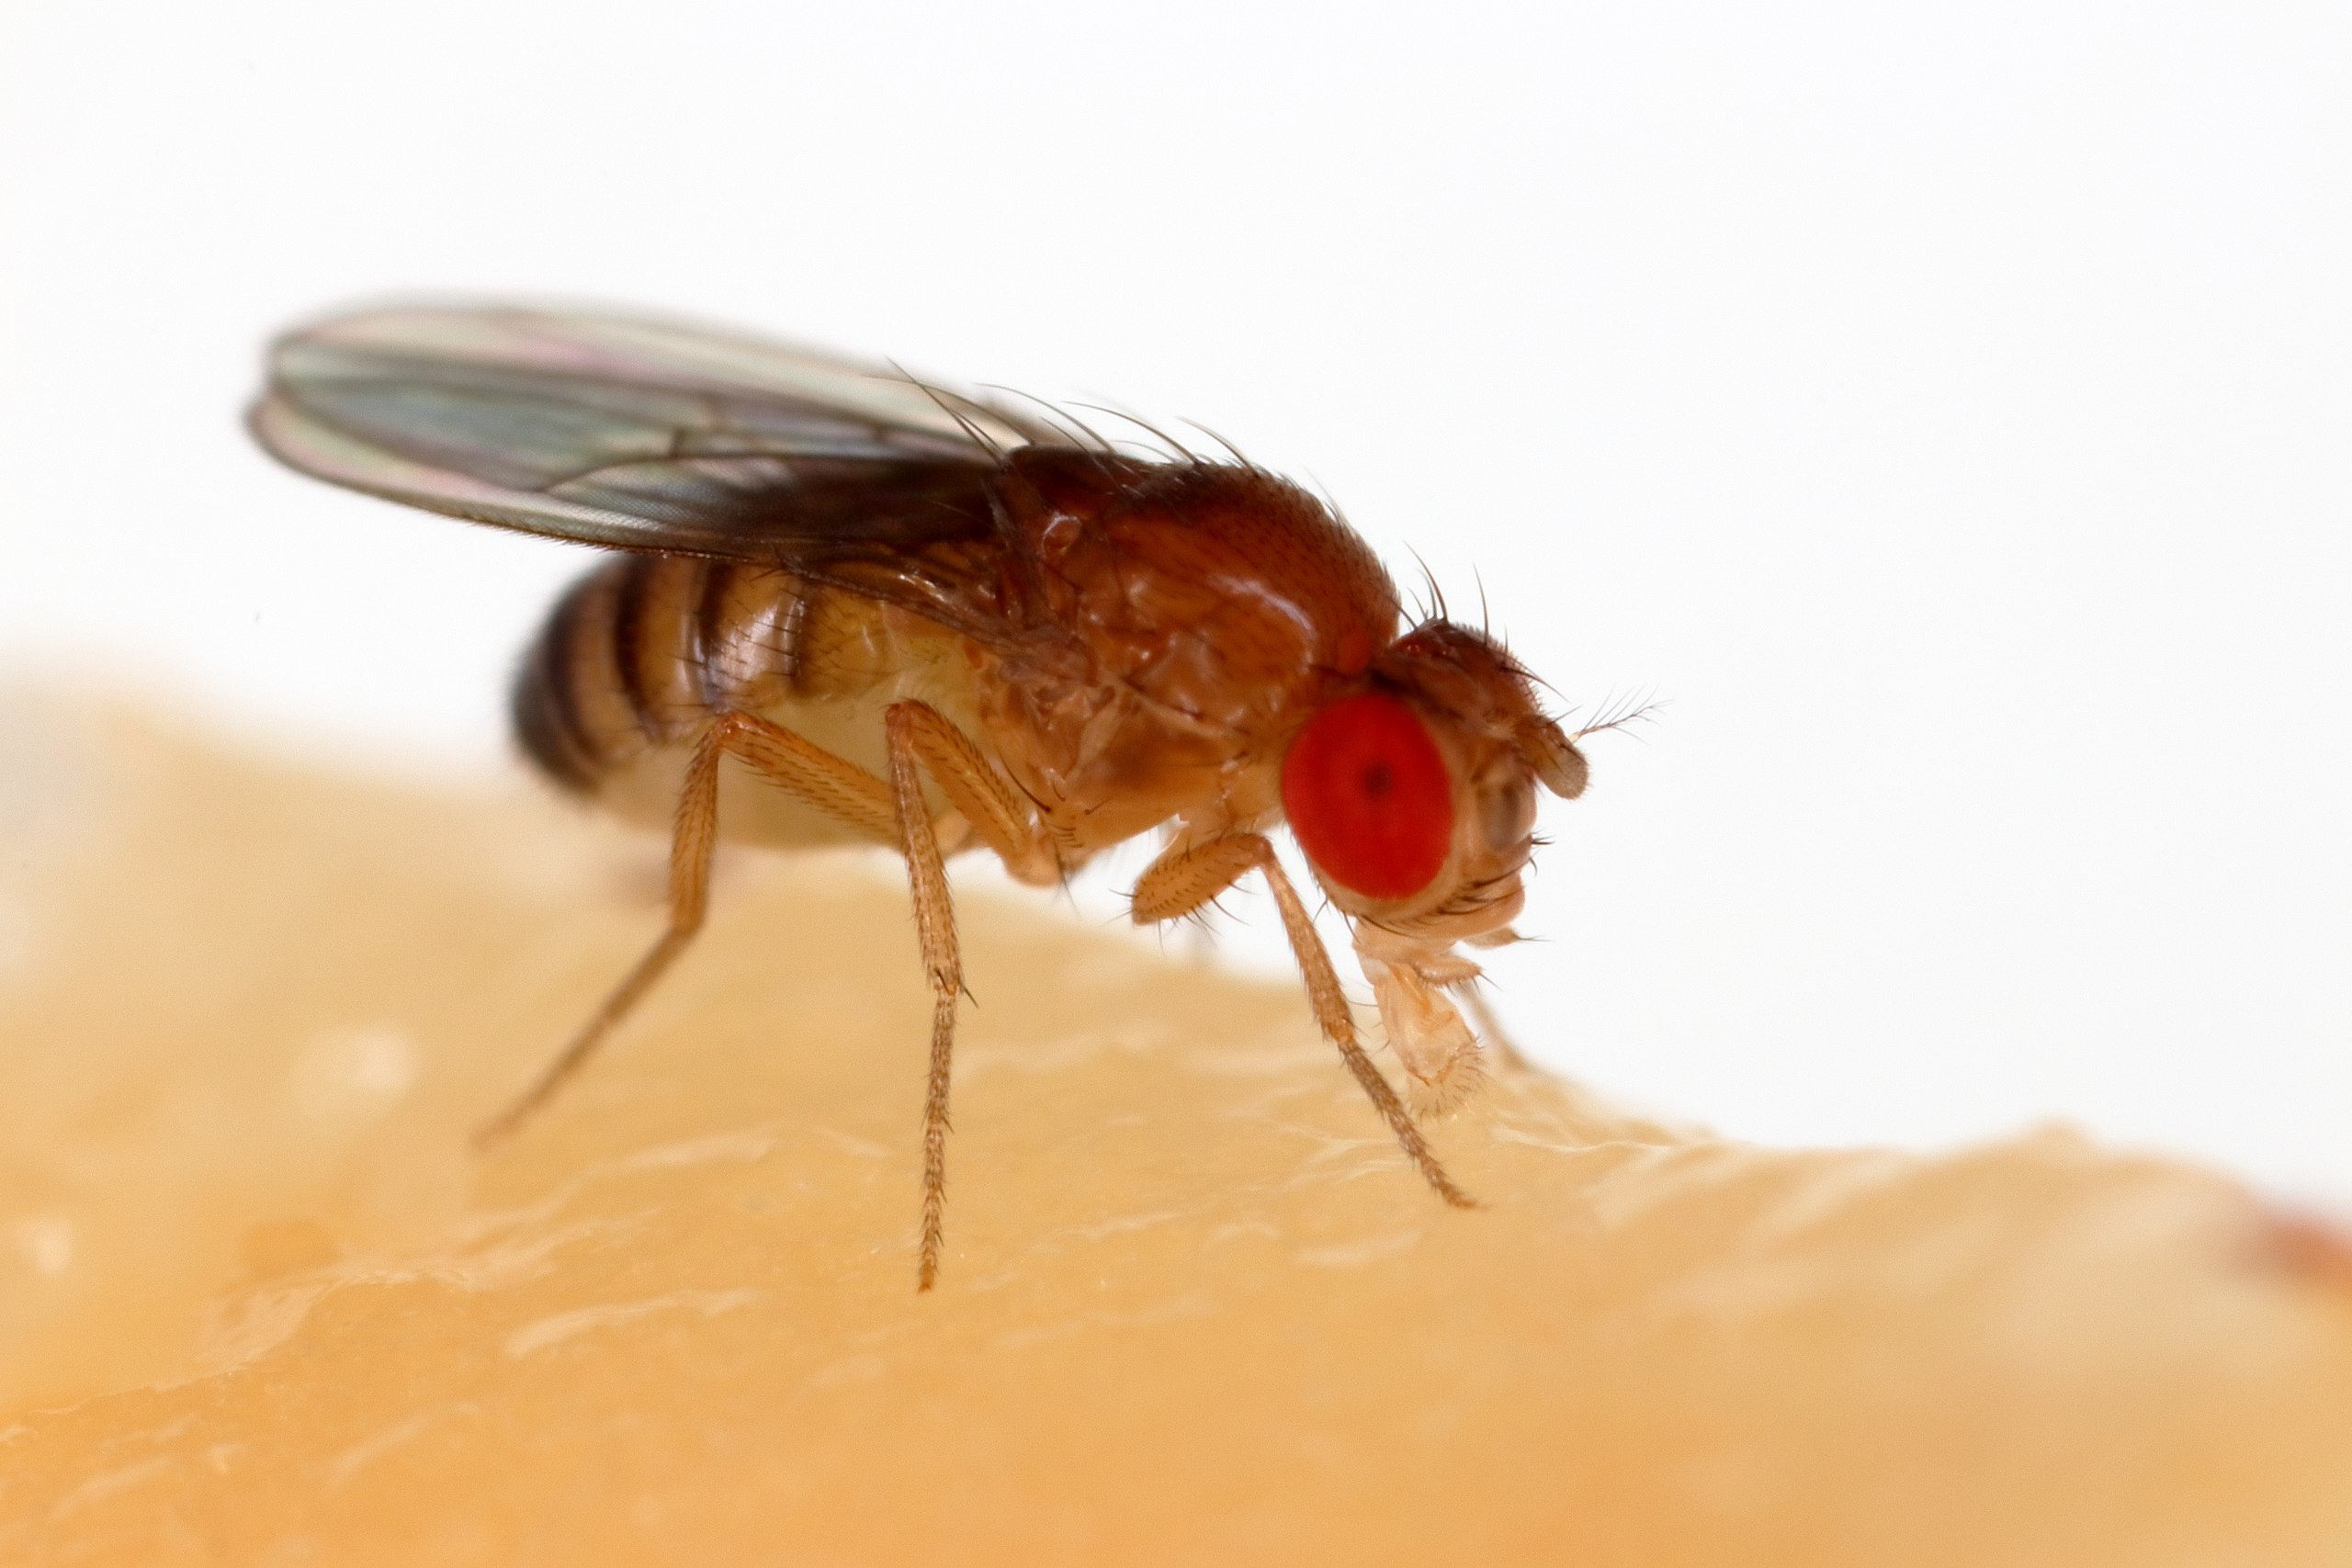 A picture of a *Drosophila* fly